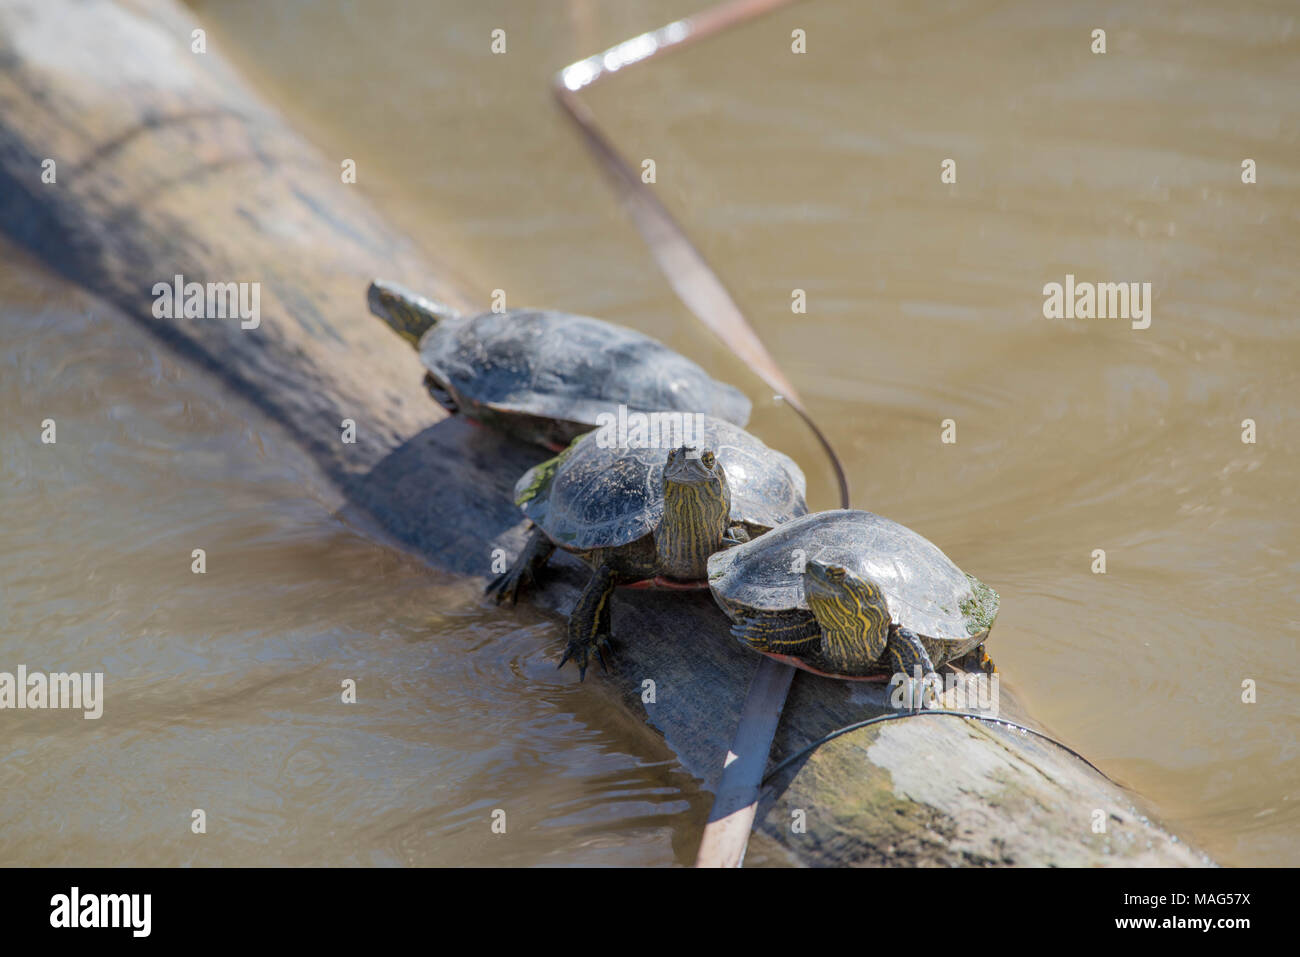 Basking Western Painted Turtles, (Chrysemys pita bellii), Bosque del Apache National Wildlife Refuge, New Mexico,USA. - Stock Image